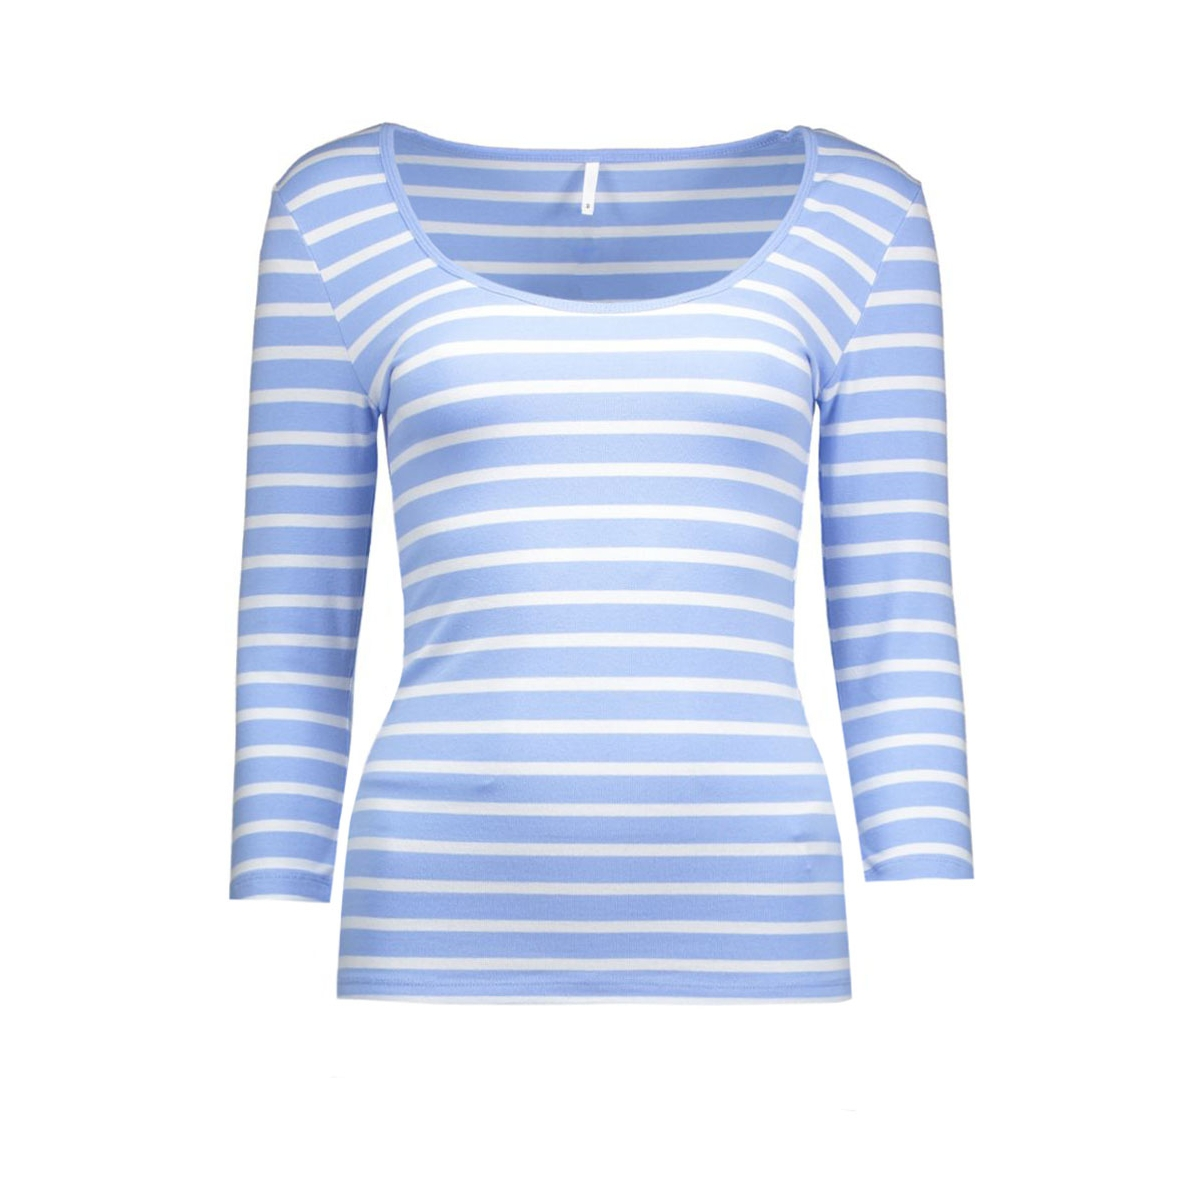 onllive love stripe 3/4 o-neck top 15113200 only t-shirt serenity/white